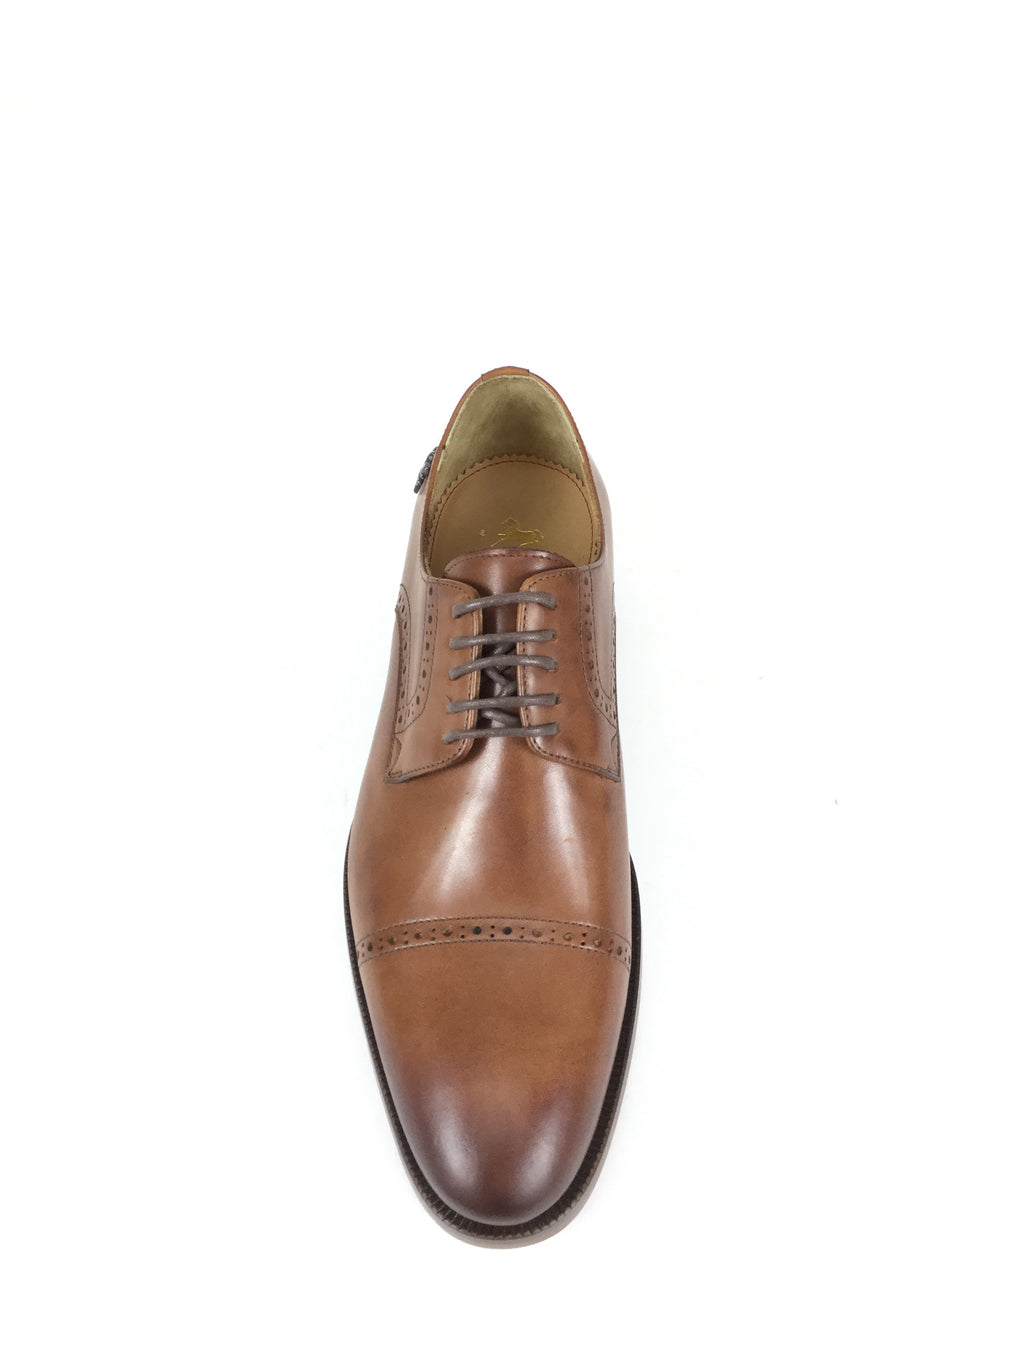 Cognac Cap Toe Brogue